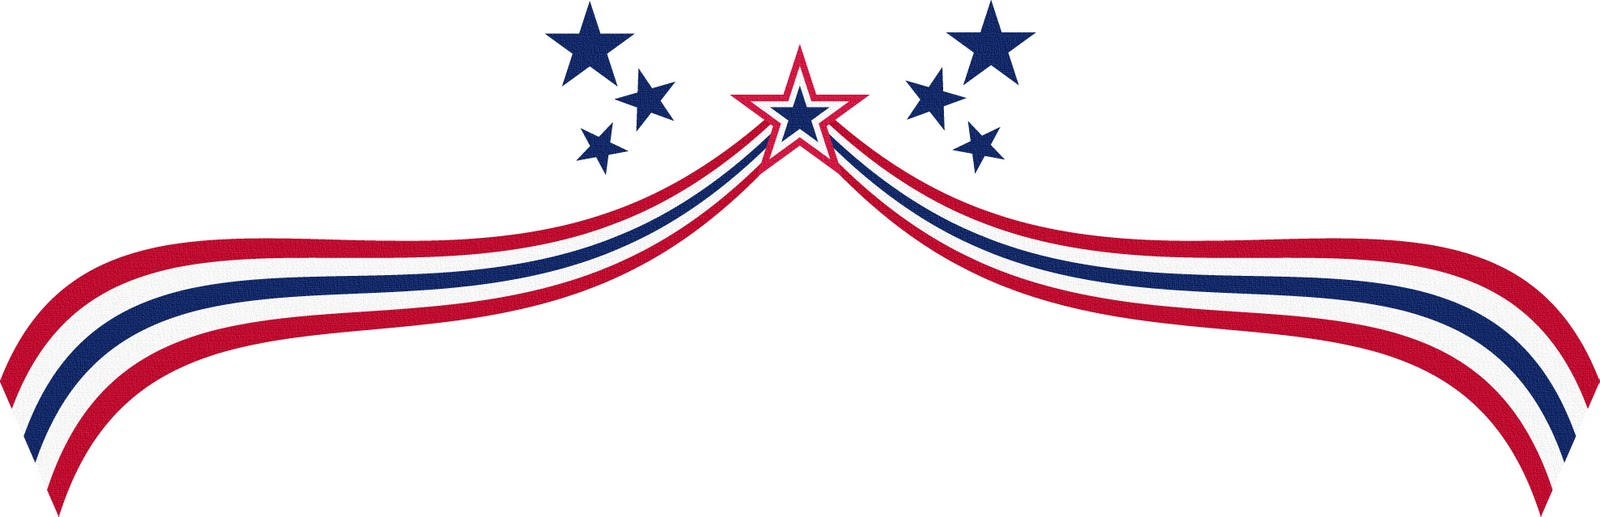 1600x517 4th Of July Borders Clipart Kid